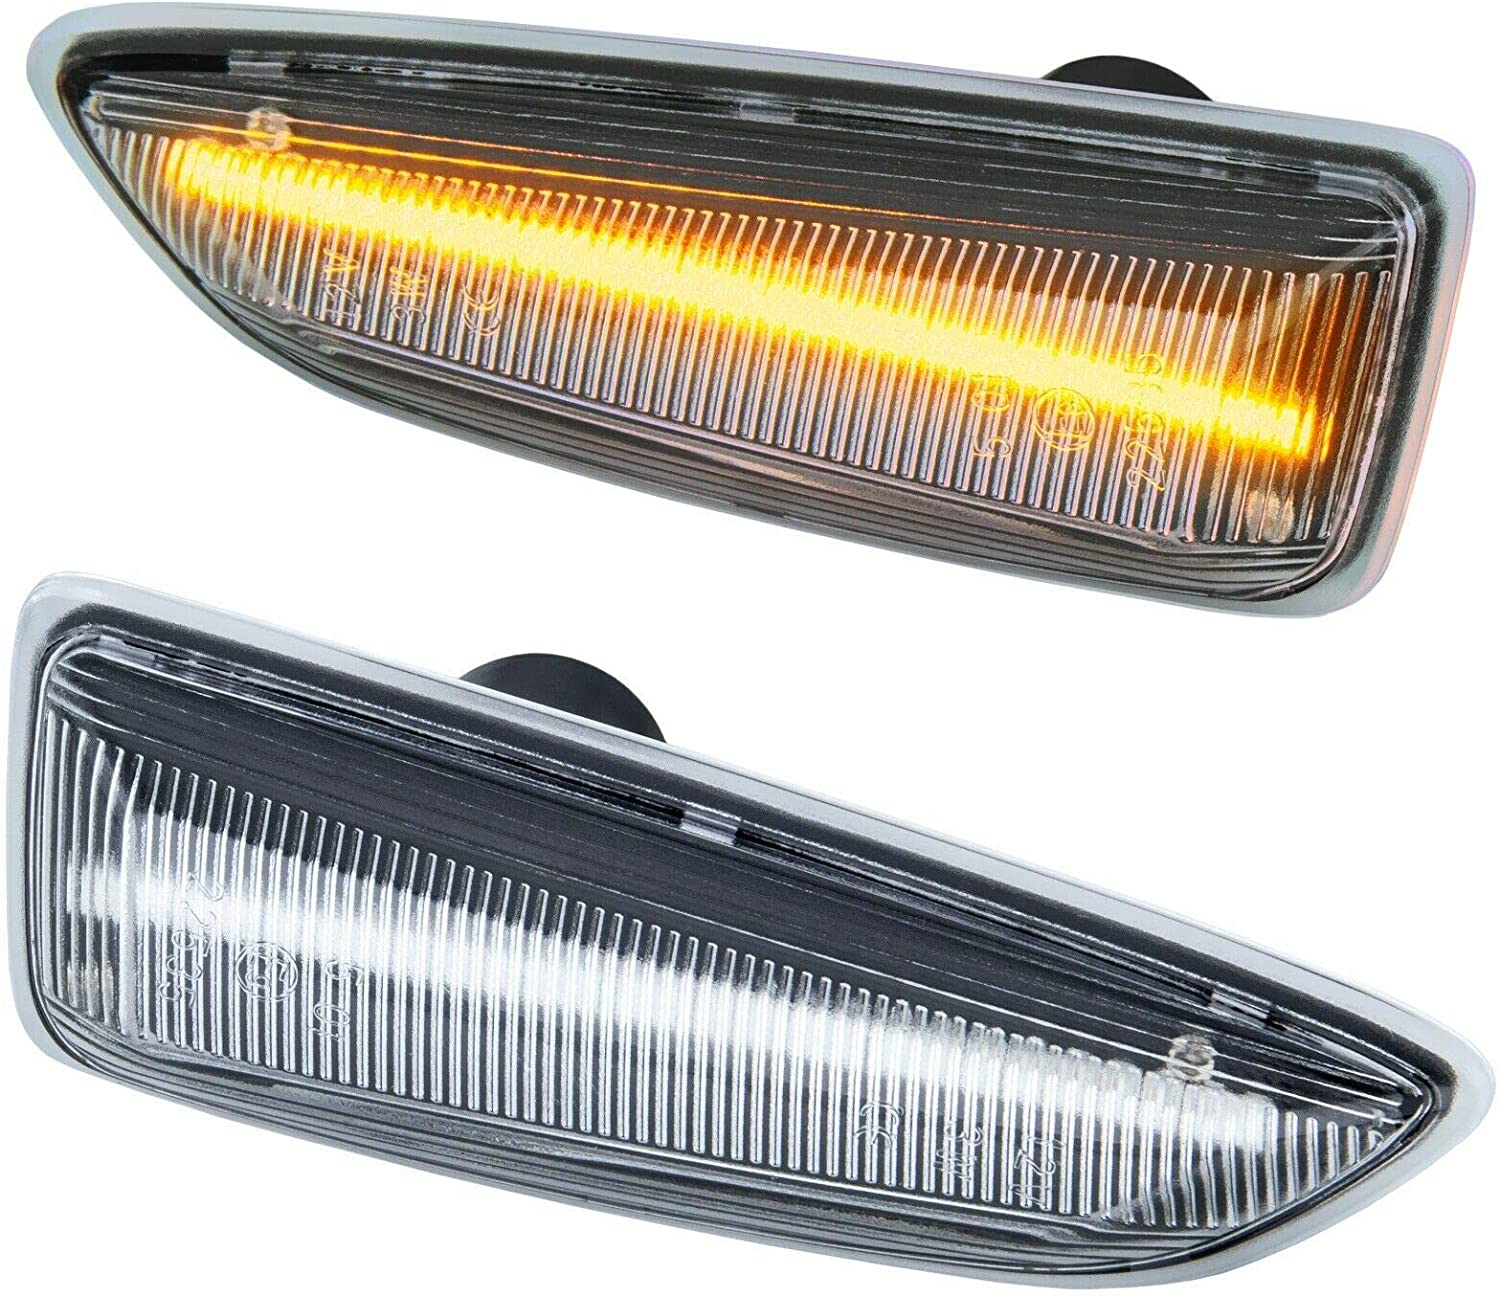 phil trade 71012 Panneau LED Compatible avec Astra J K Insignia B Zafira C